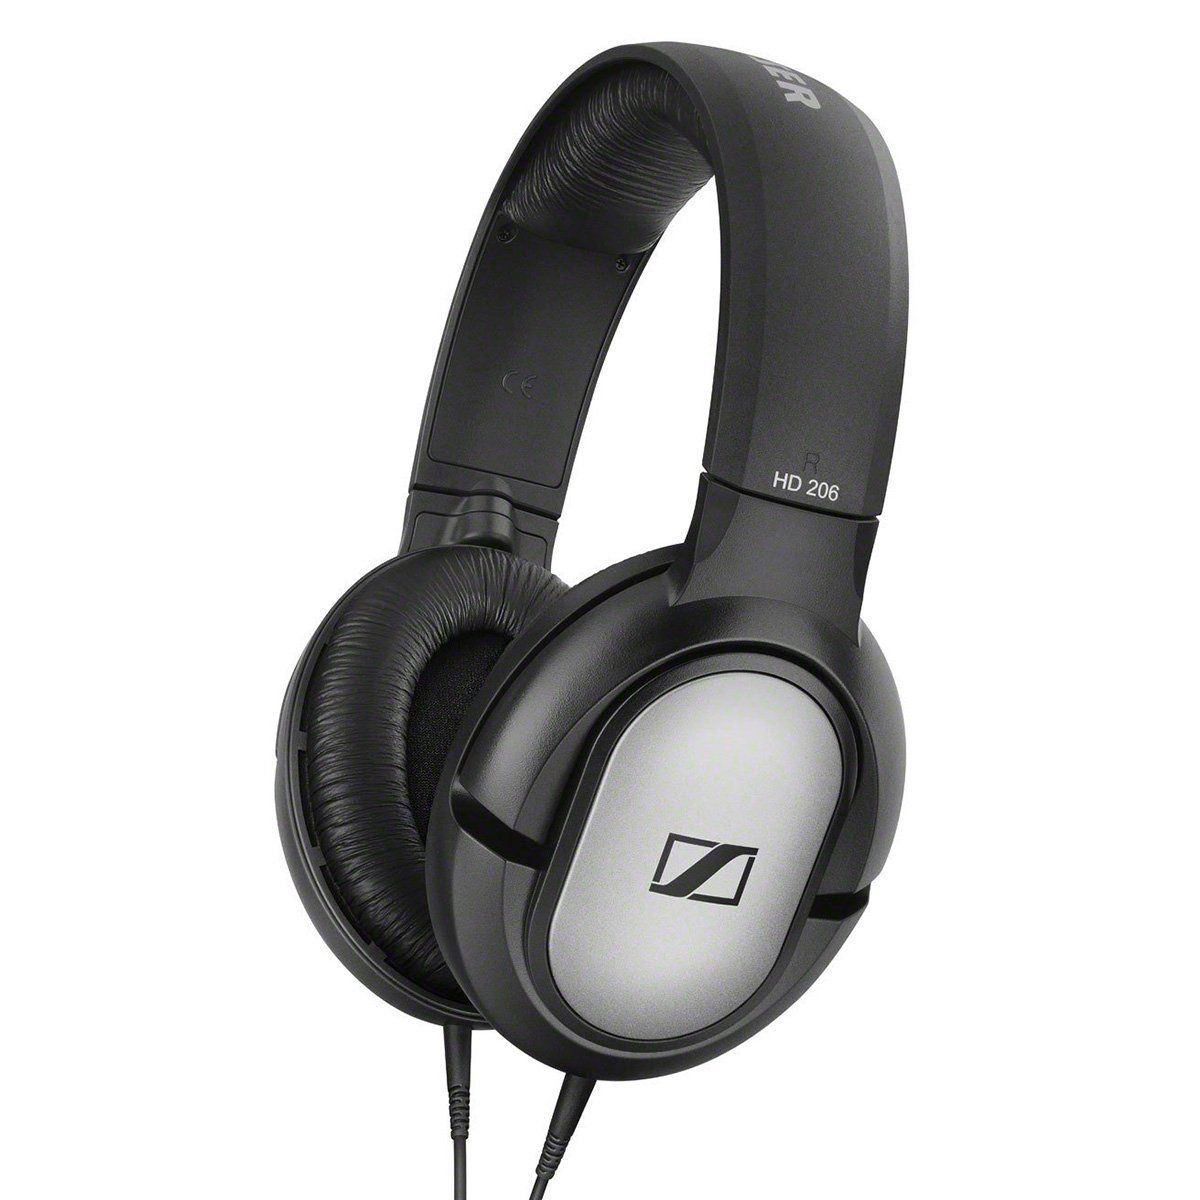 Sennheiser HD 206 Fone de Ouvido Sennheiser HD-206, Over Ear Headphones